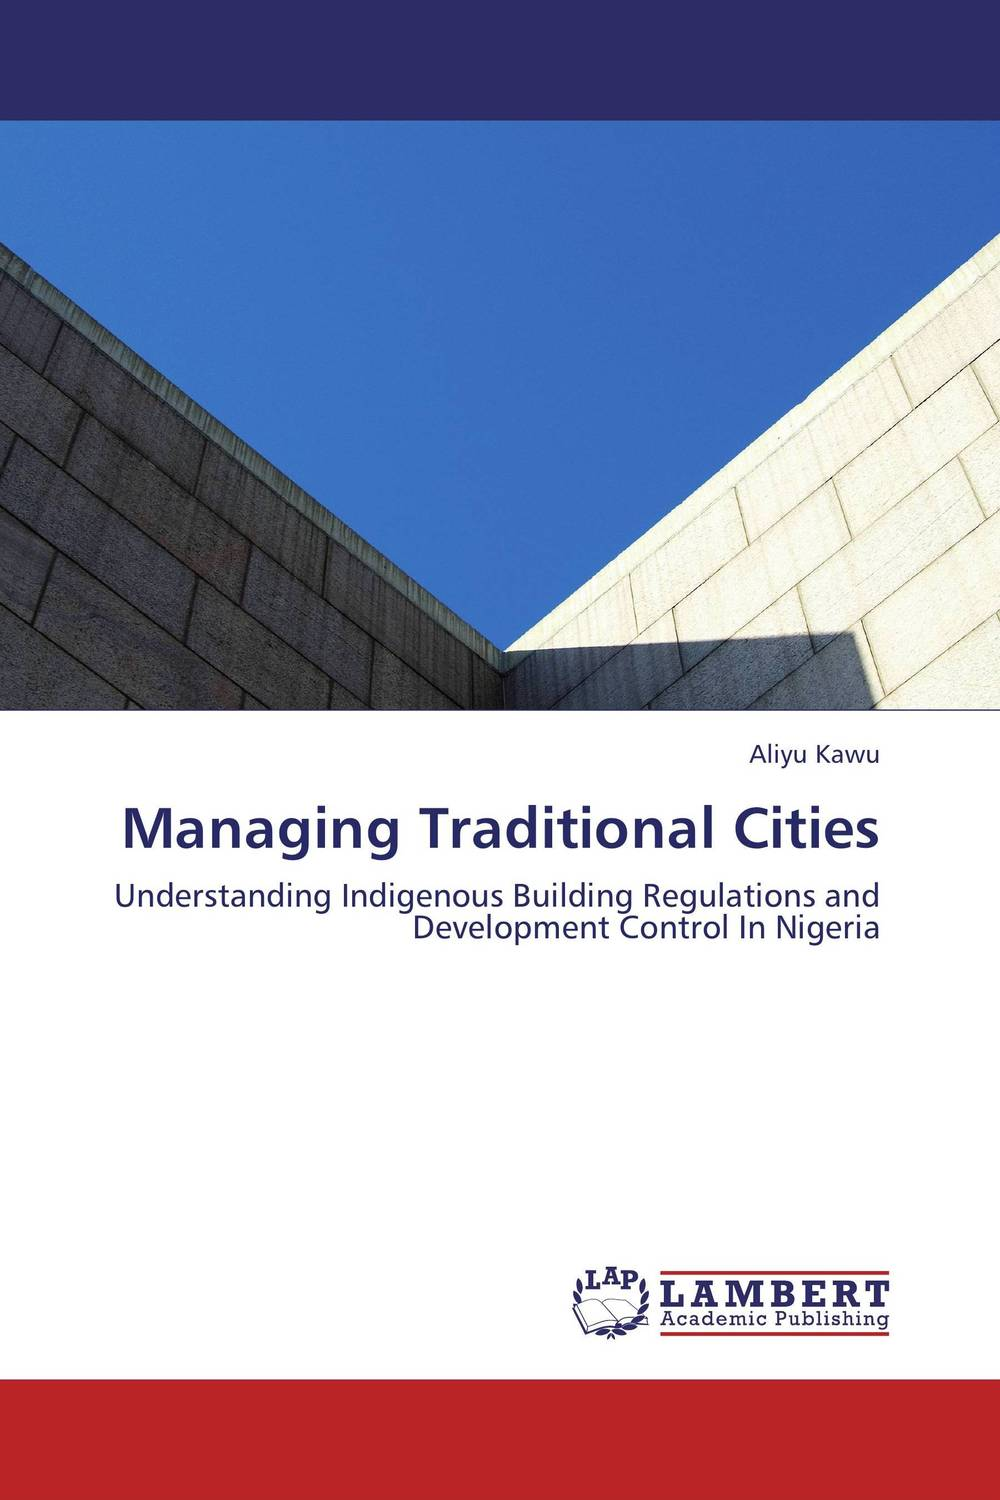 Managing Traditional Cities tim kochis managing concentrated stock wealth an advisor s guide to building customized solutions